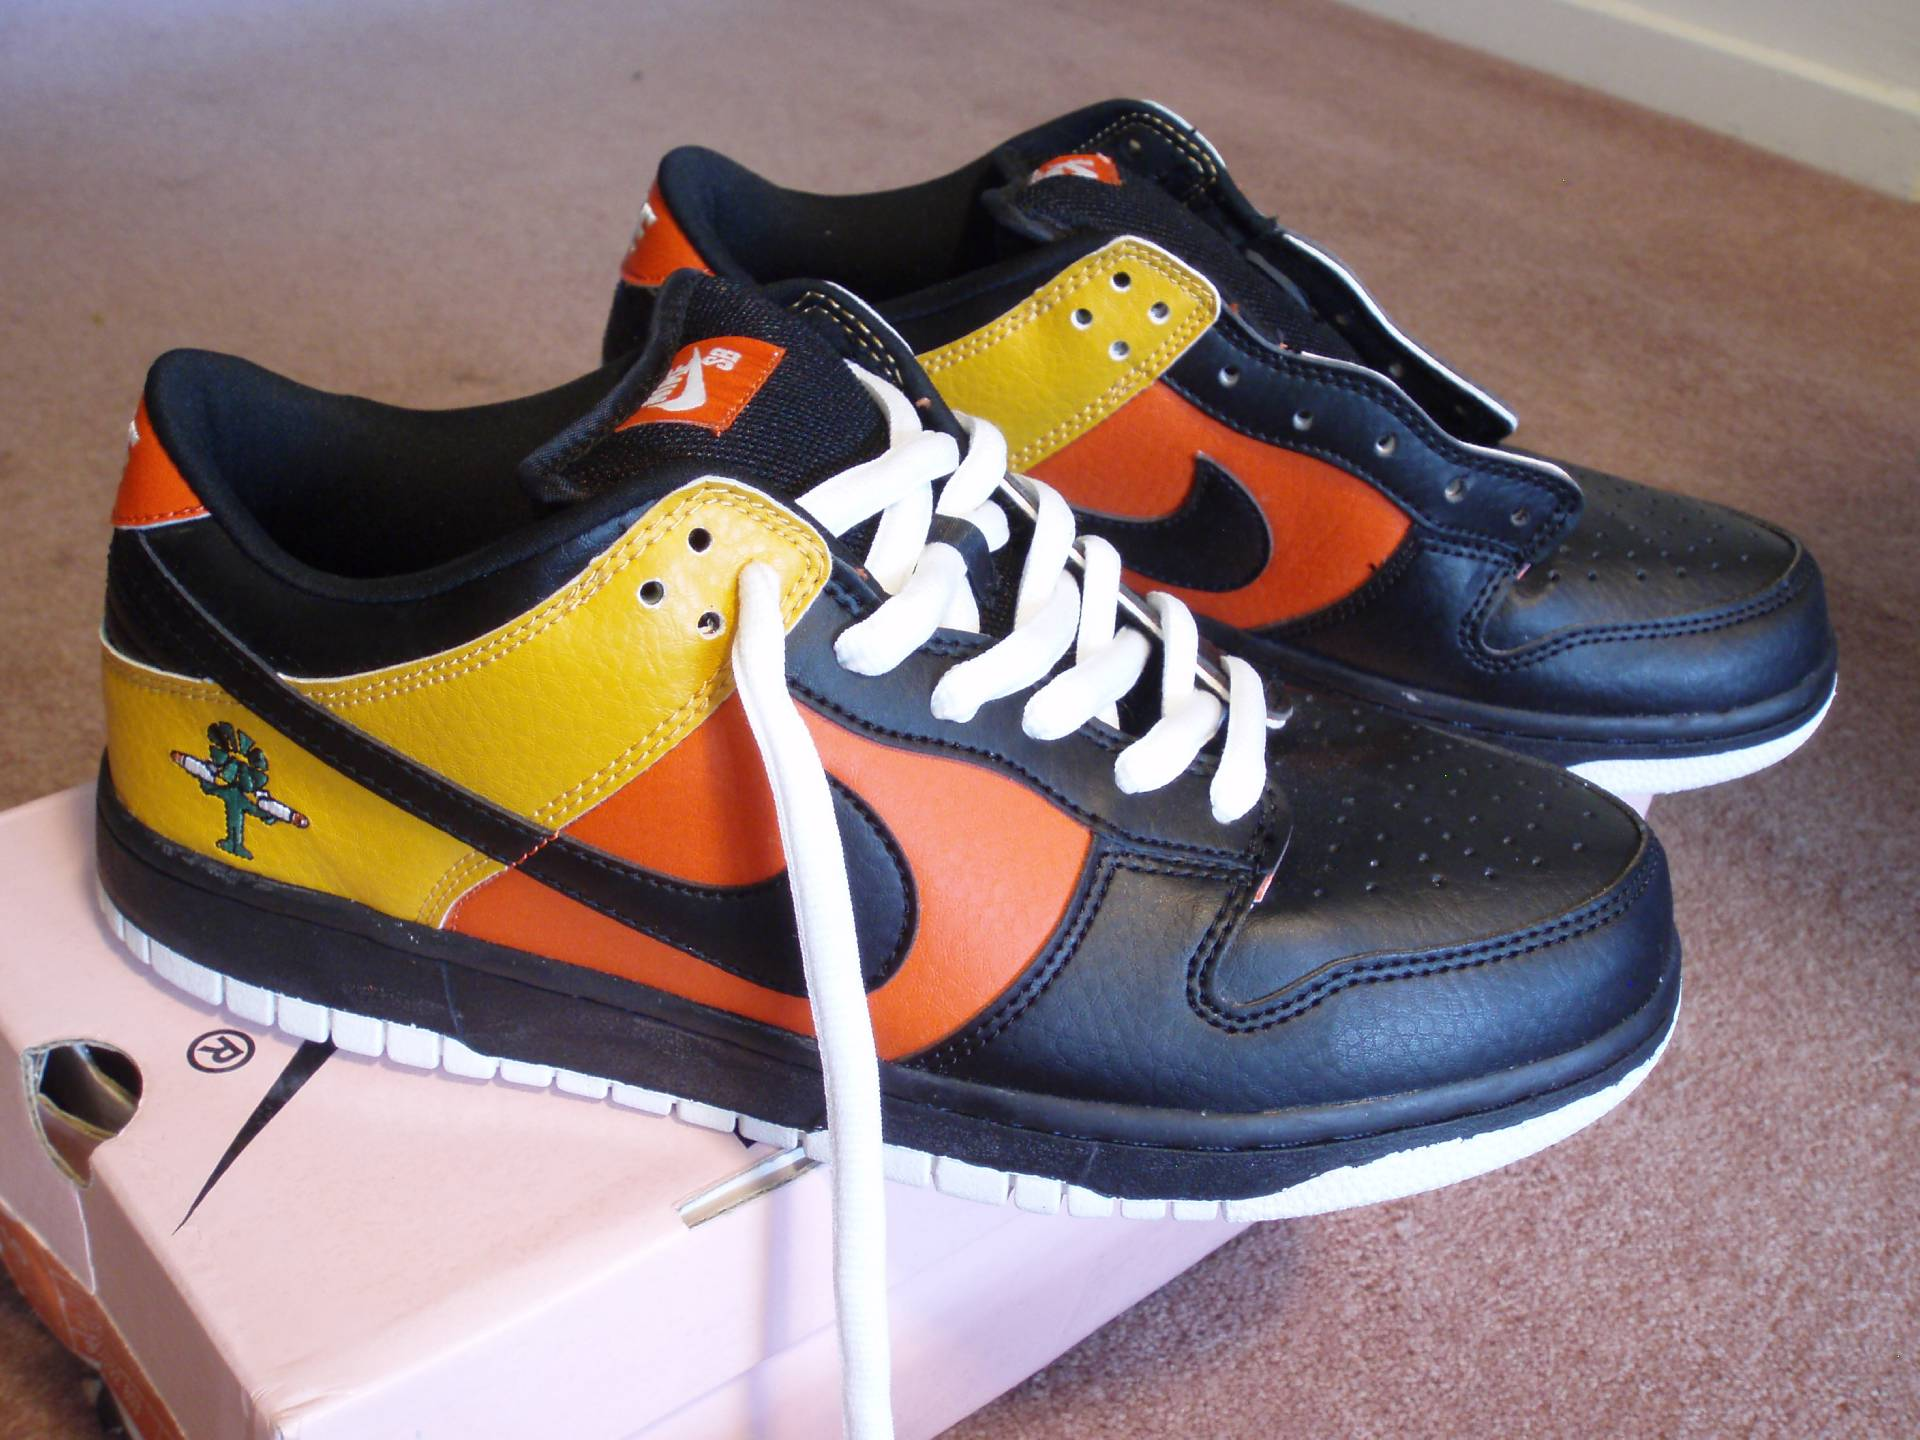 Nike-Dunk-Low-Pro-SB-SZ-10-US-Leather-RAYGUN-Never-worn-from-2005